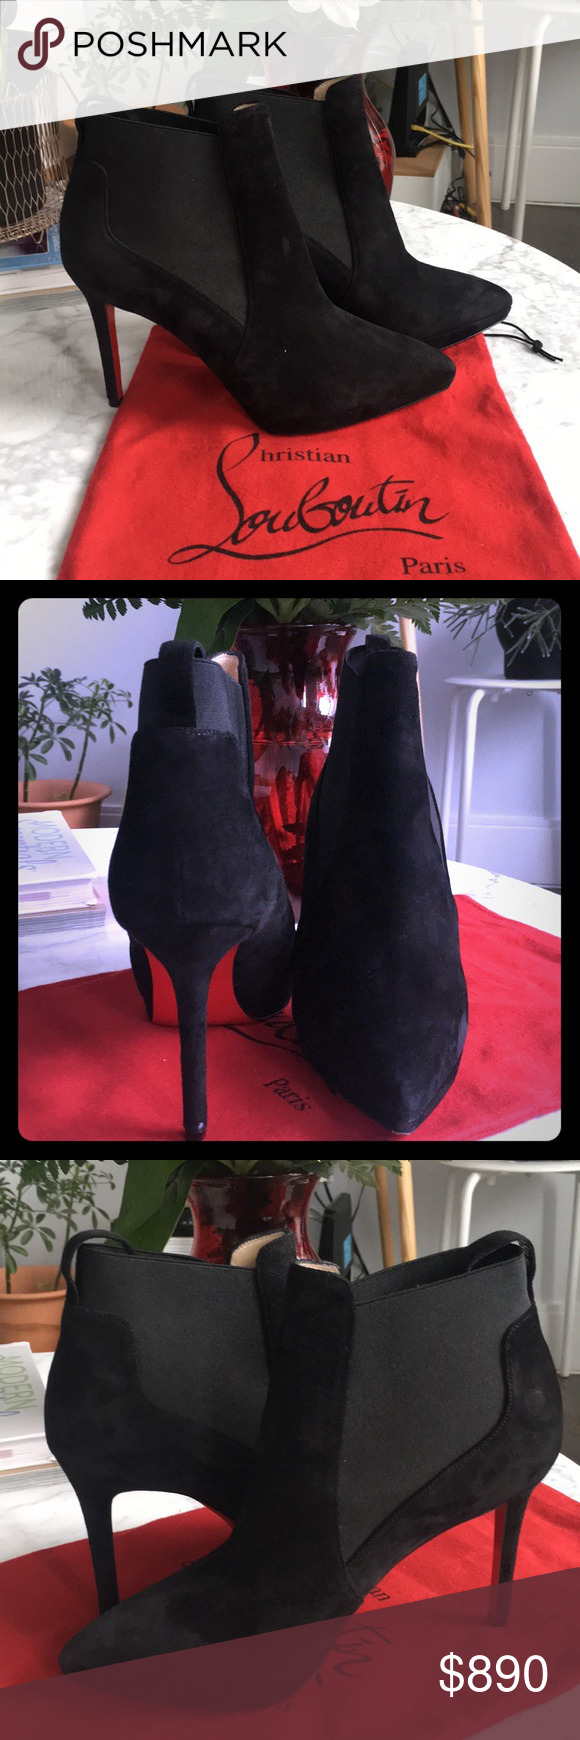 172fccd9af70 Christian Louboutin Crochinetta Ankle Boots Worn only Once ! Like new ! New  collection 2018 Tapered suede Chelsea bootie on slim platform Self-covered  heel